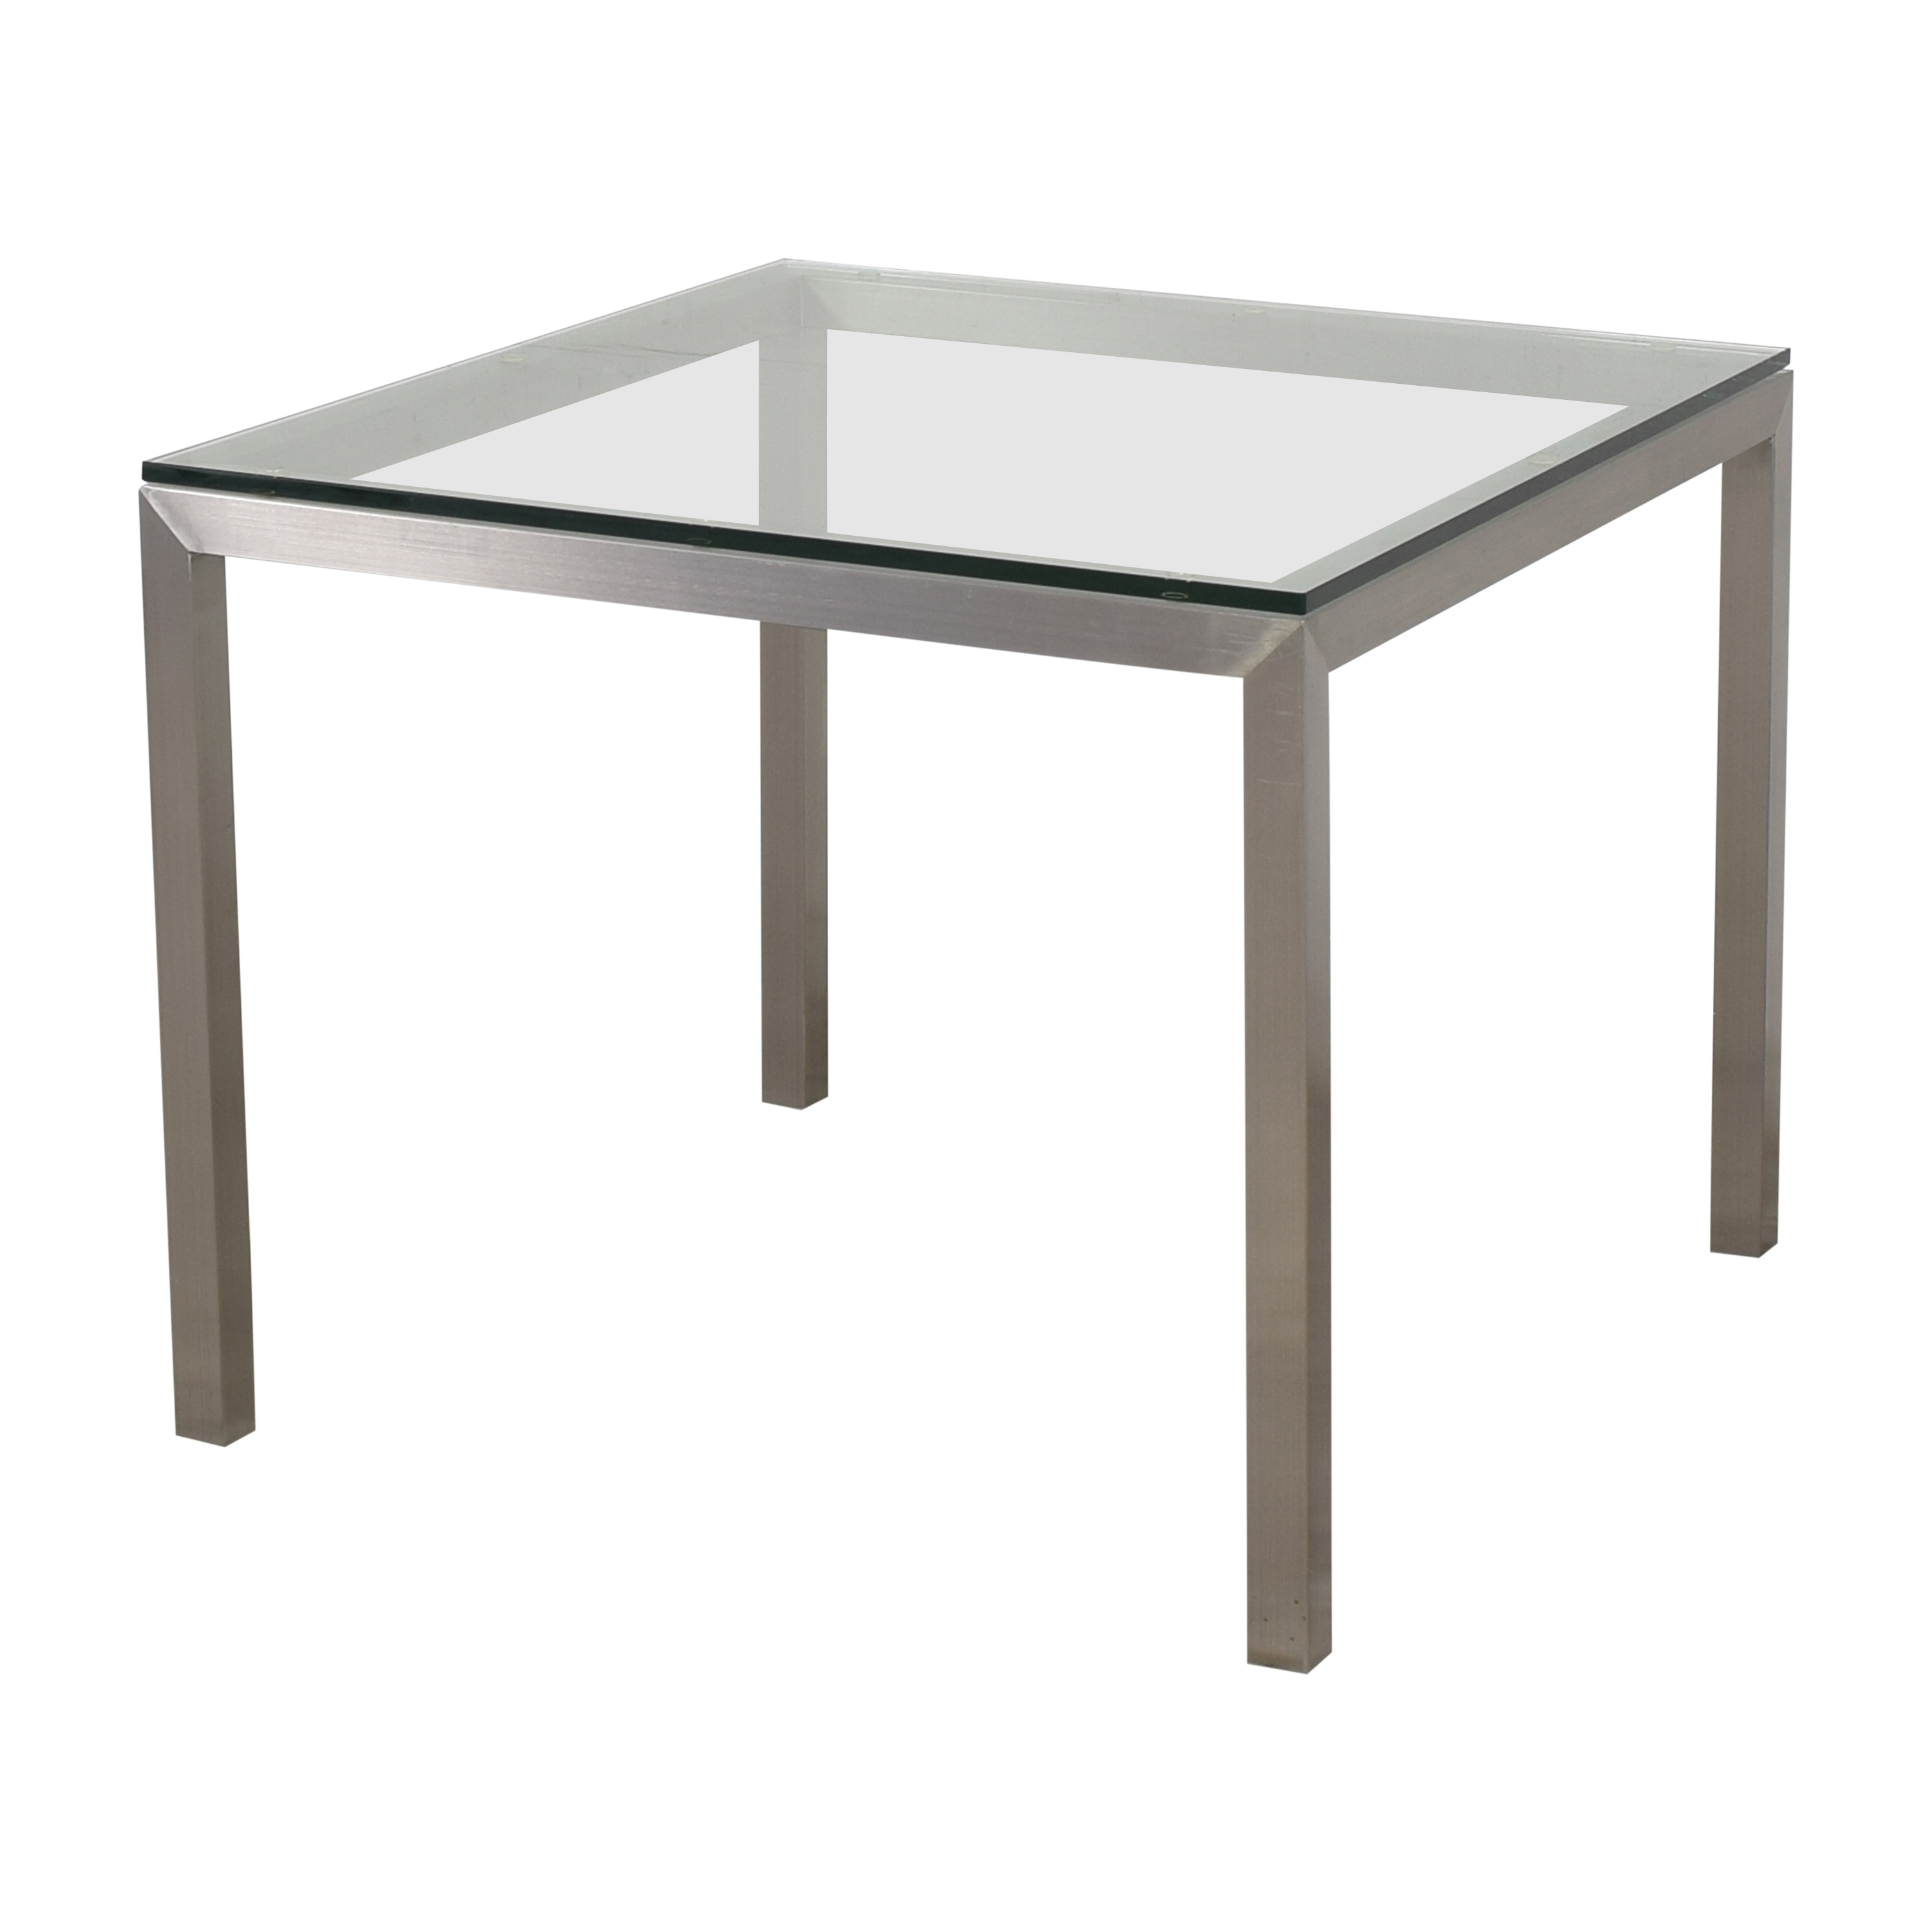 Crate & Barrel Crate & Barrel Parsons Square Dining Table for sale